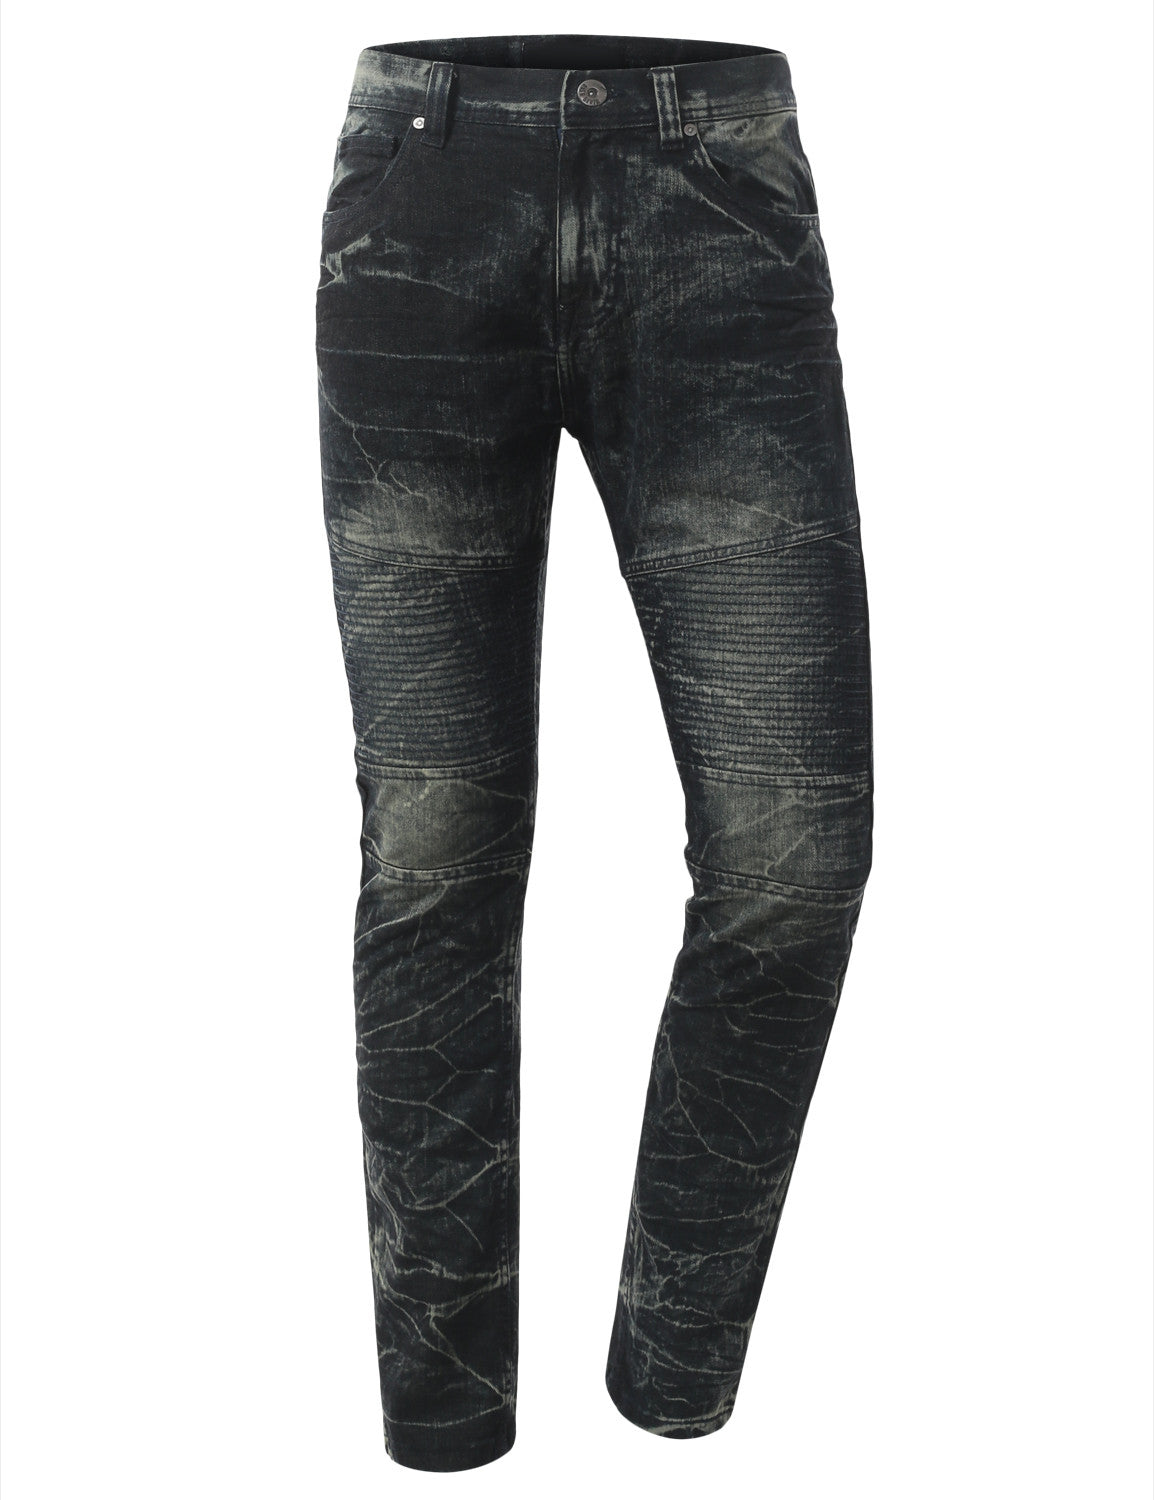 Straight Slim Fit Acid Wash Biker Jeans - URBANCREWS - 11